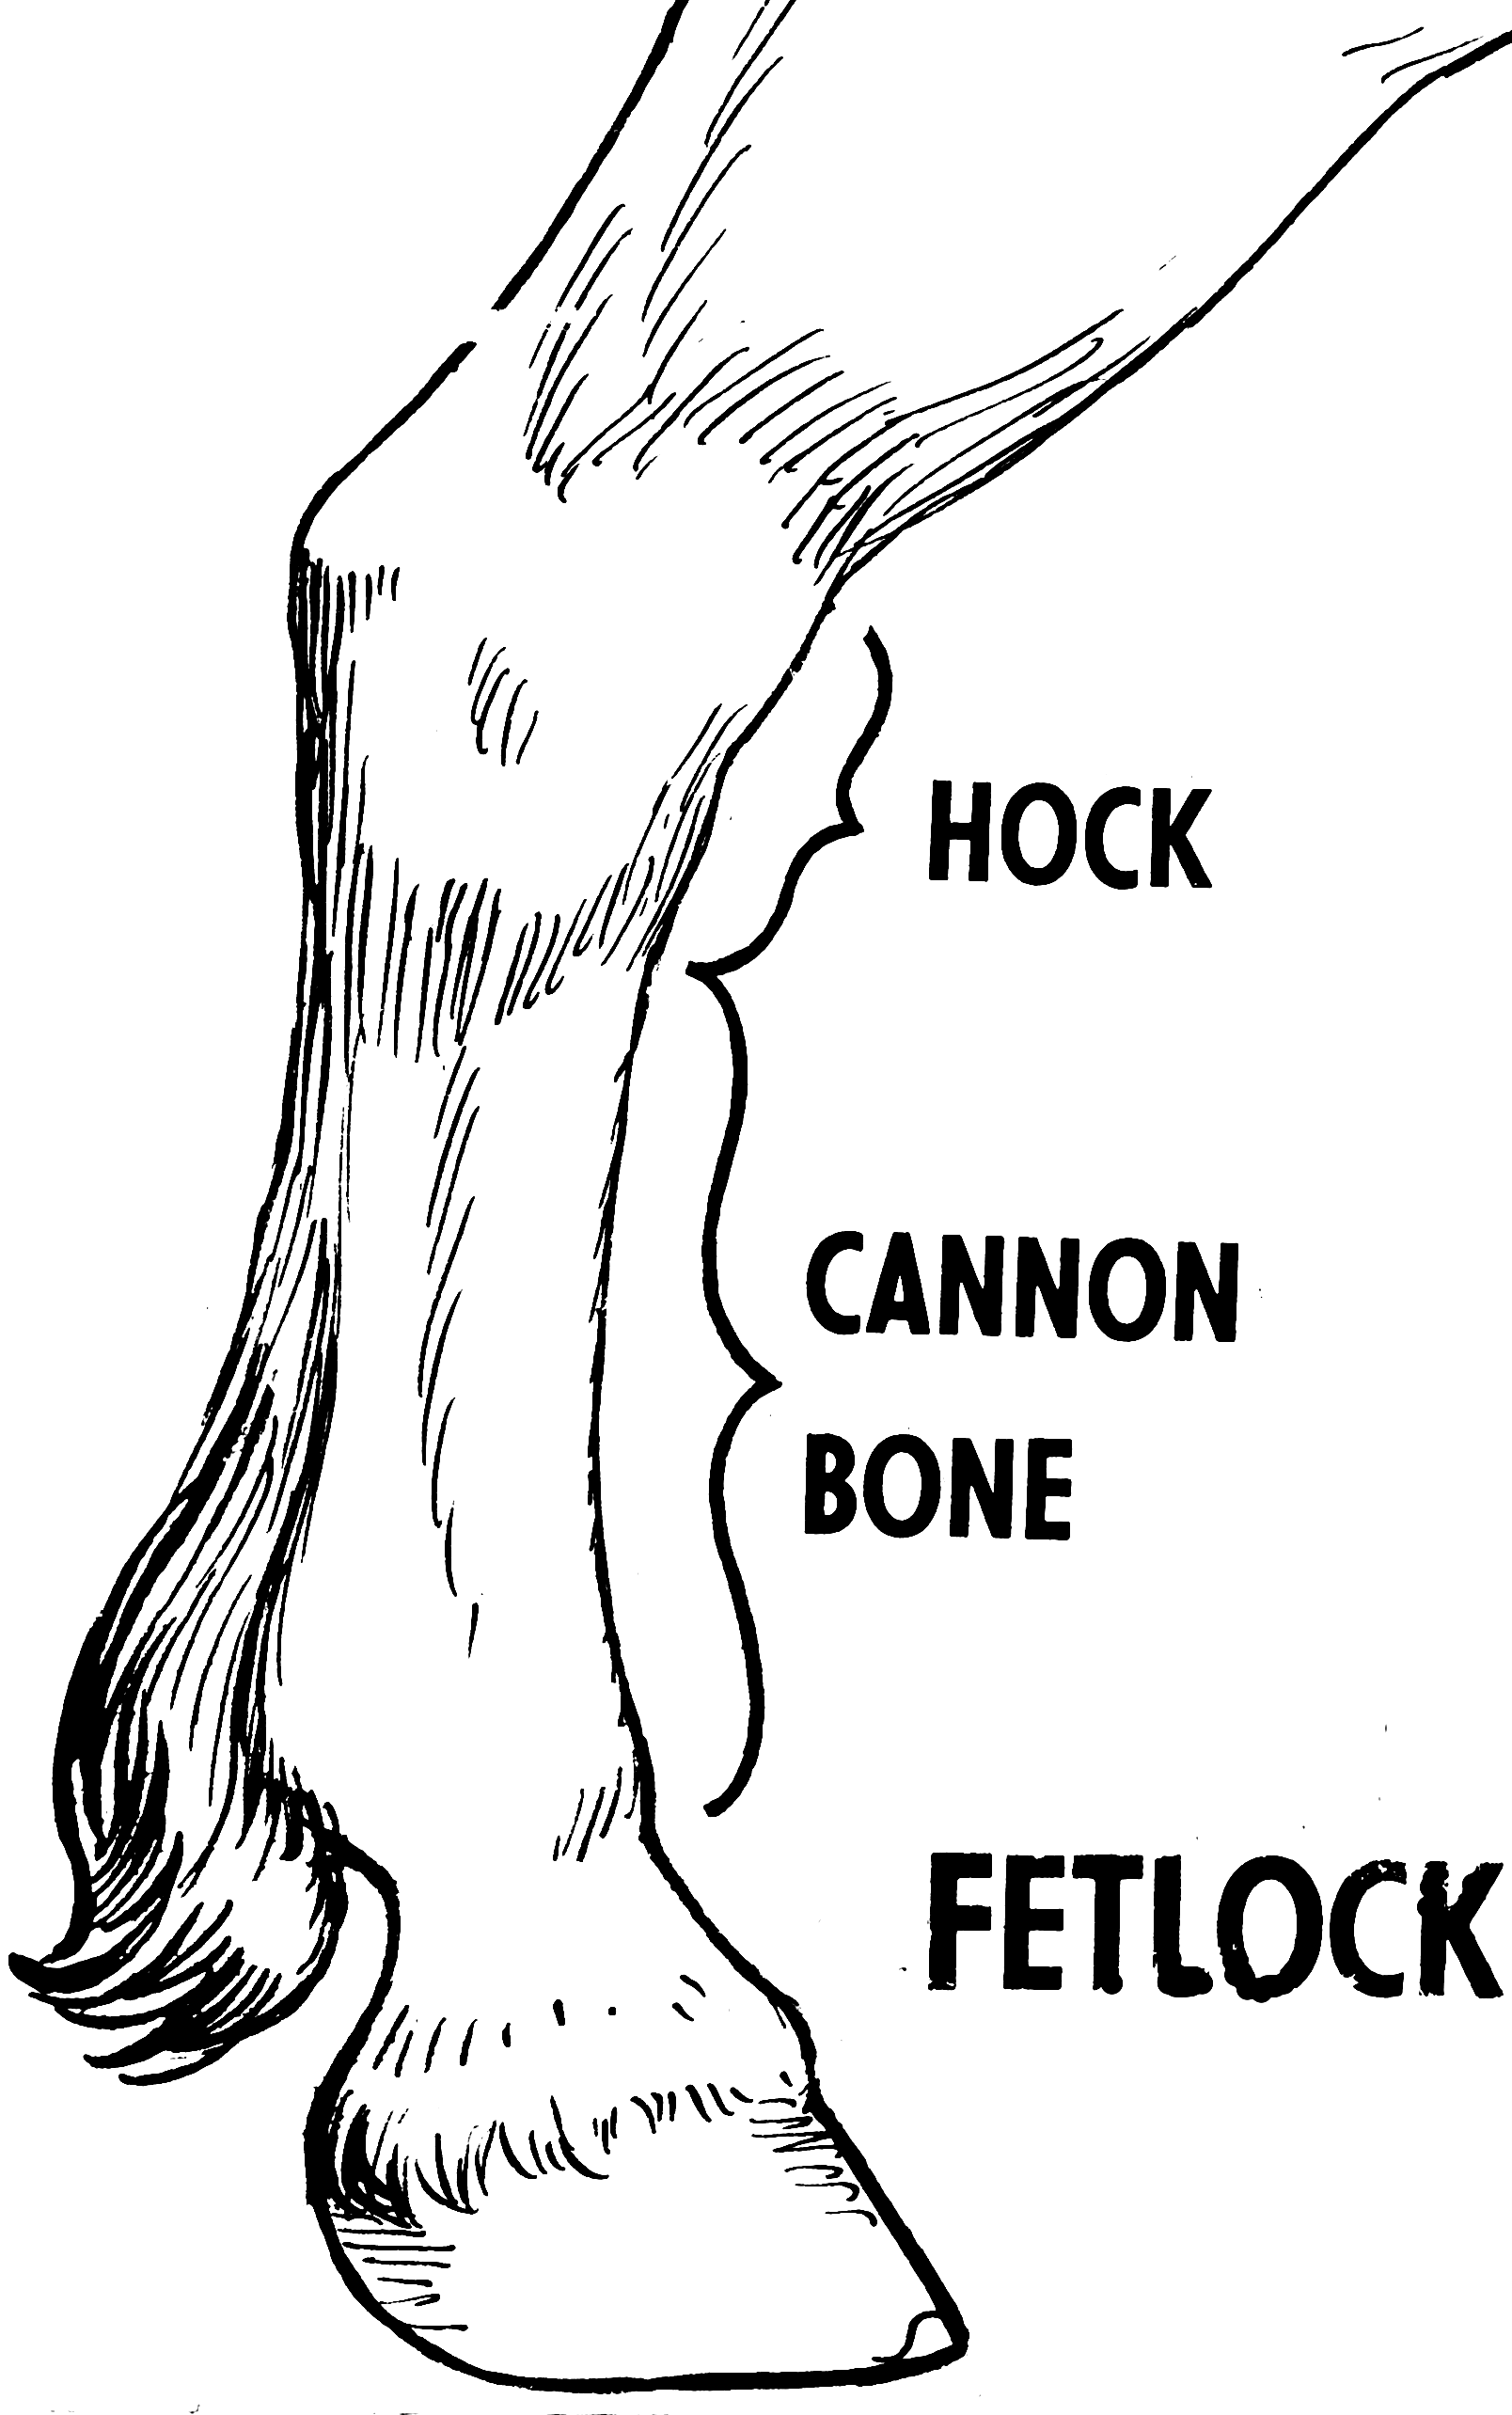 Where Is The Fetlock On A Horse